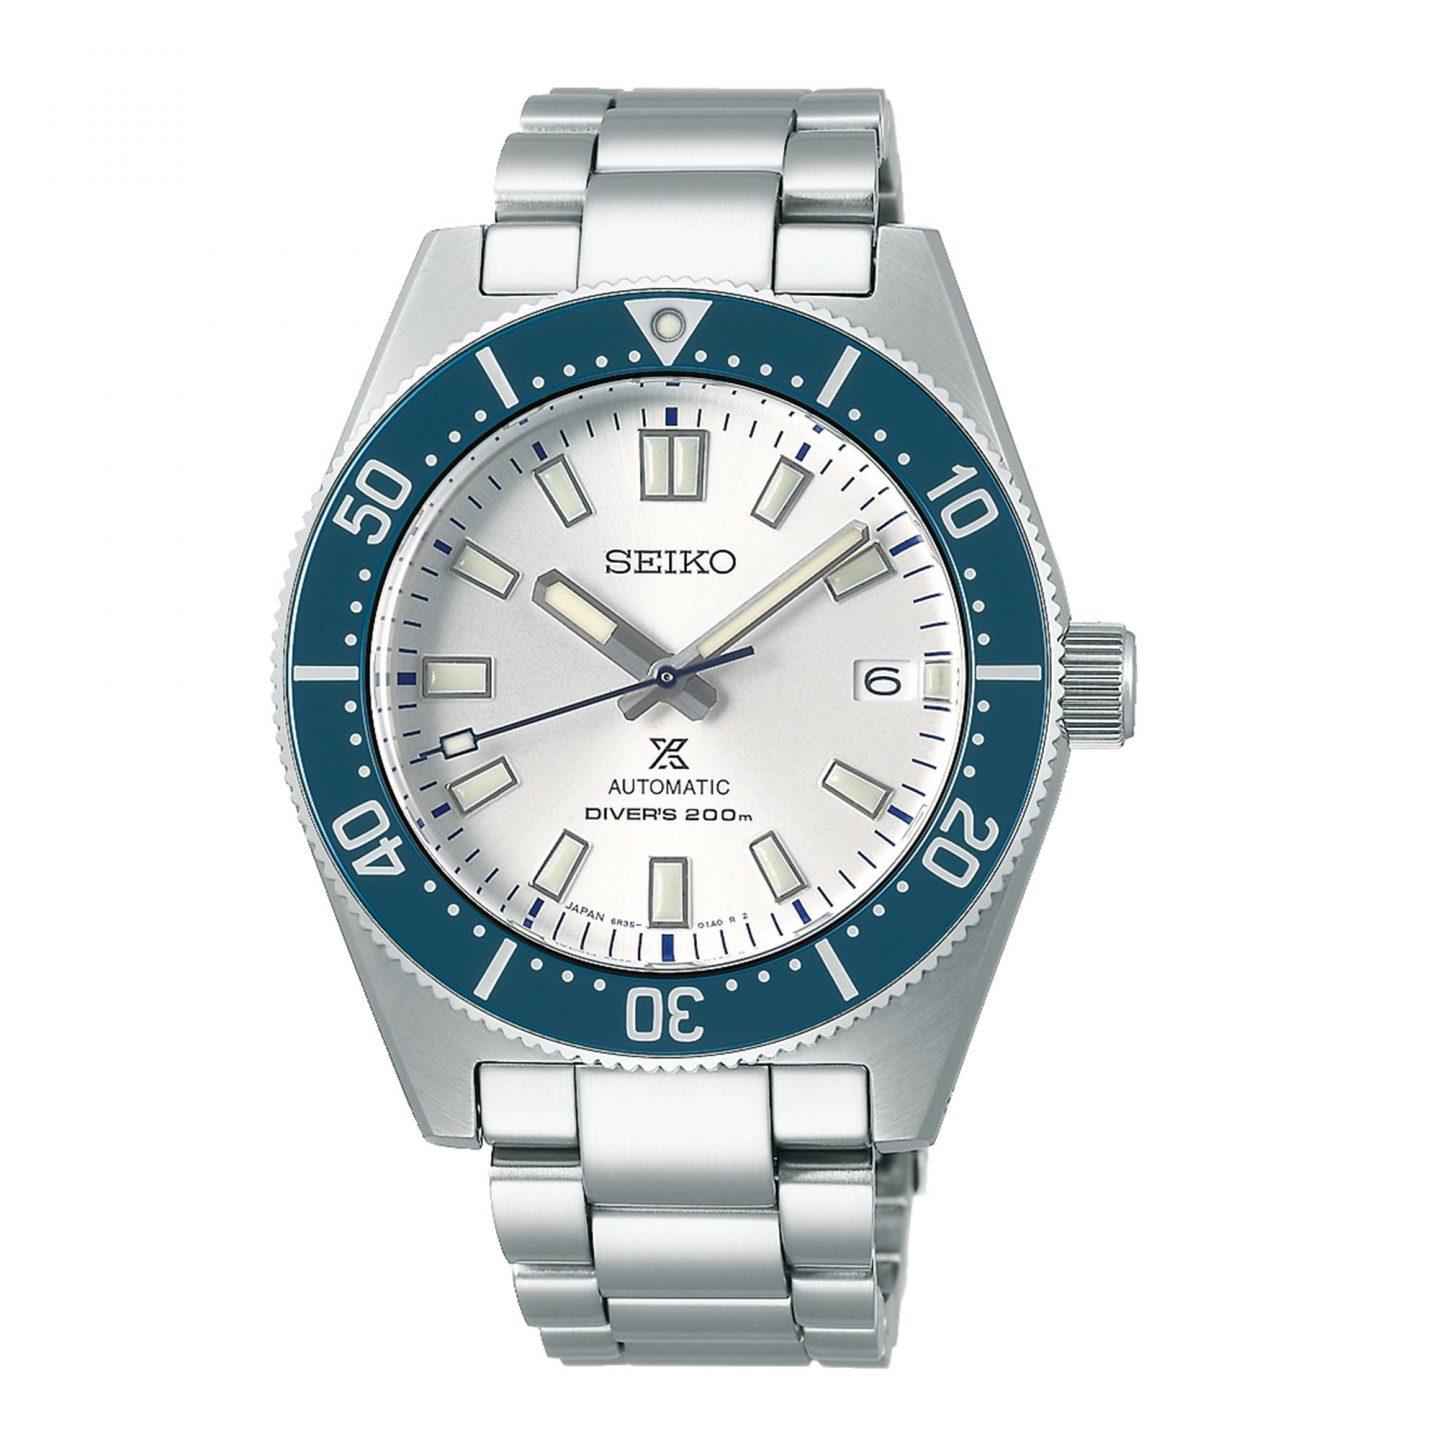 Seiko Prospex 140th Anniversary Limited Edition Automatic Movement White Dial Stainless Steel Bracelet SPB213J1